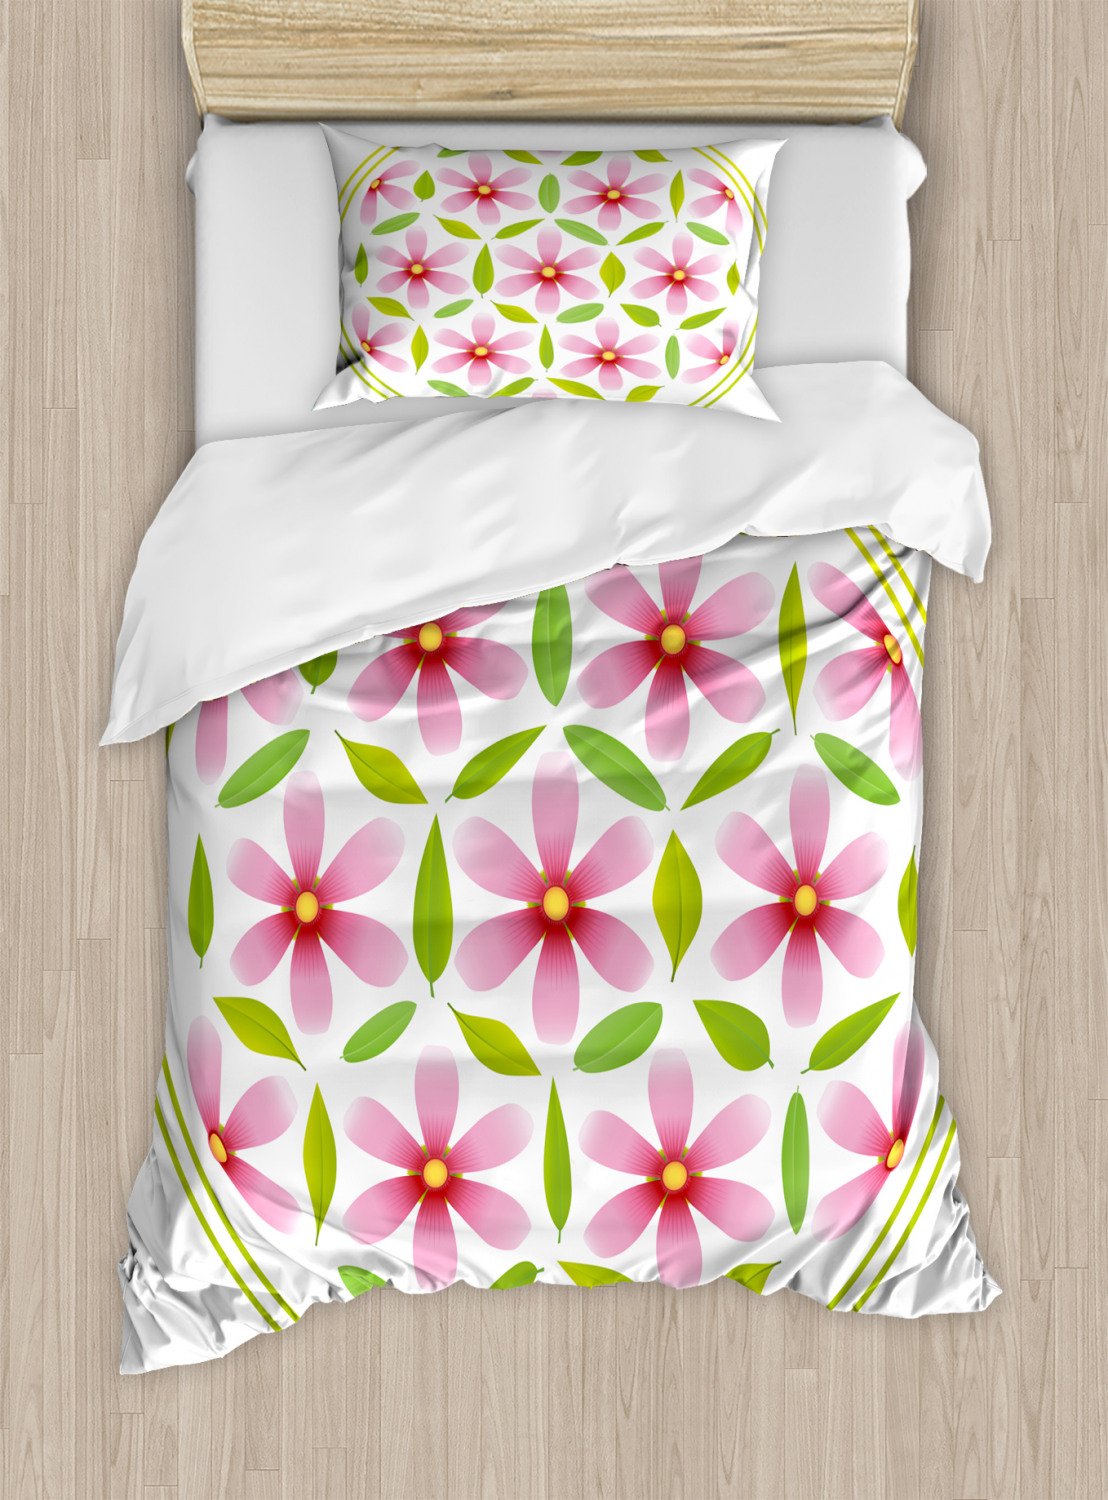 Flower-of-Life-Duvet-Cover-Set-Twin-Queen-King-Sizes-with-Pillow-Shams thumbnail 31